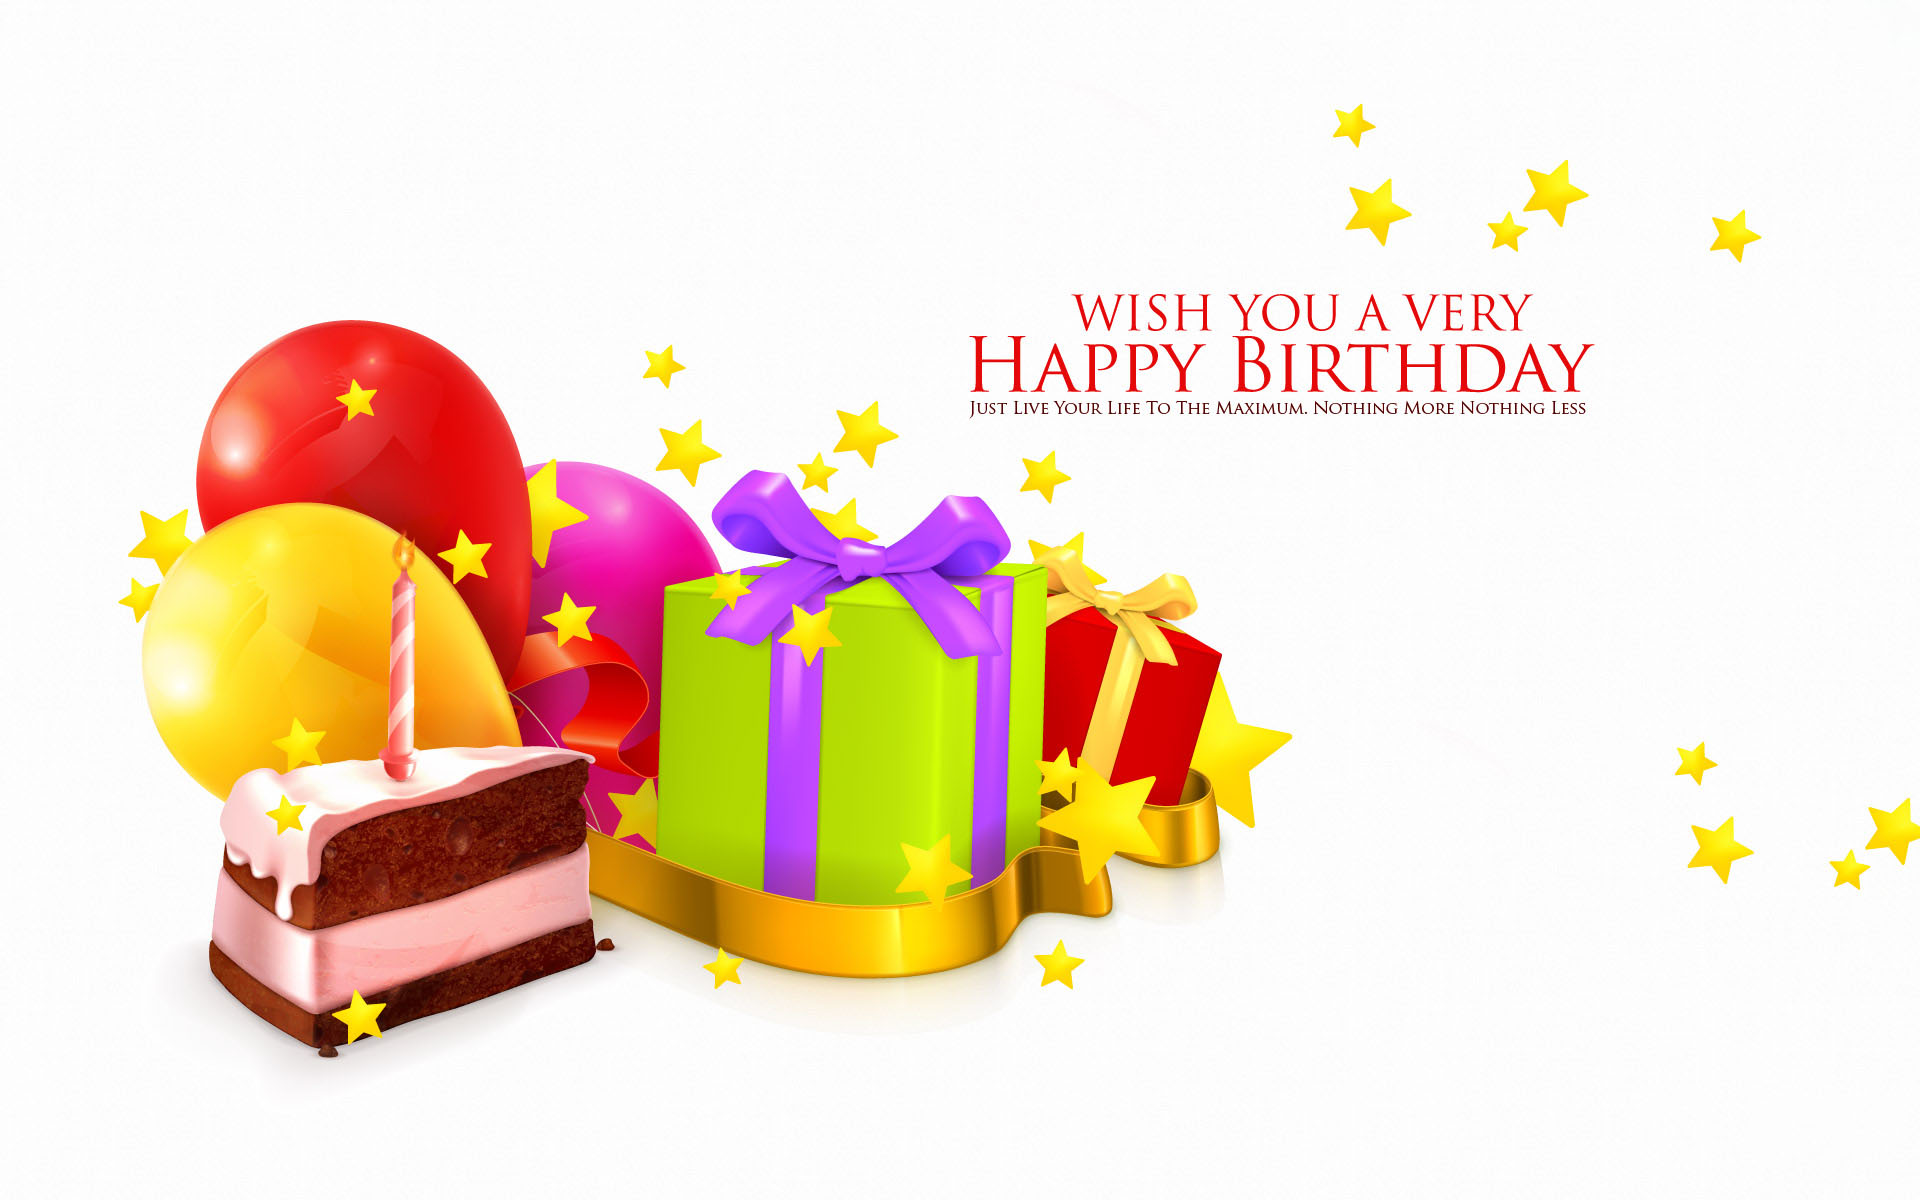 funny birthday wallpaper ; Happy-Birthday-Wallpaper-HD-Pictures-6